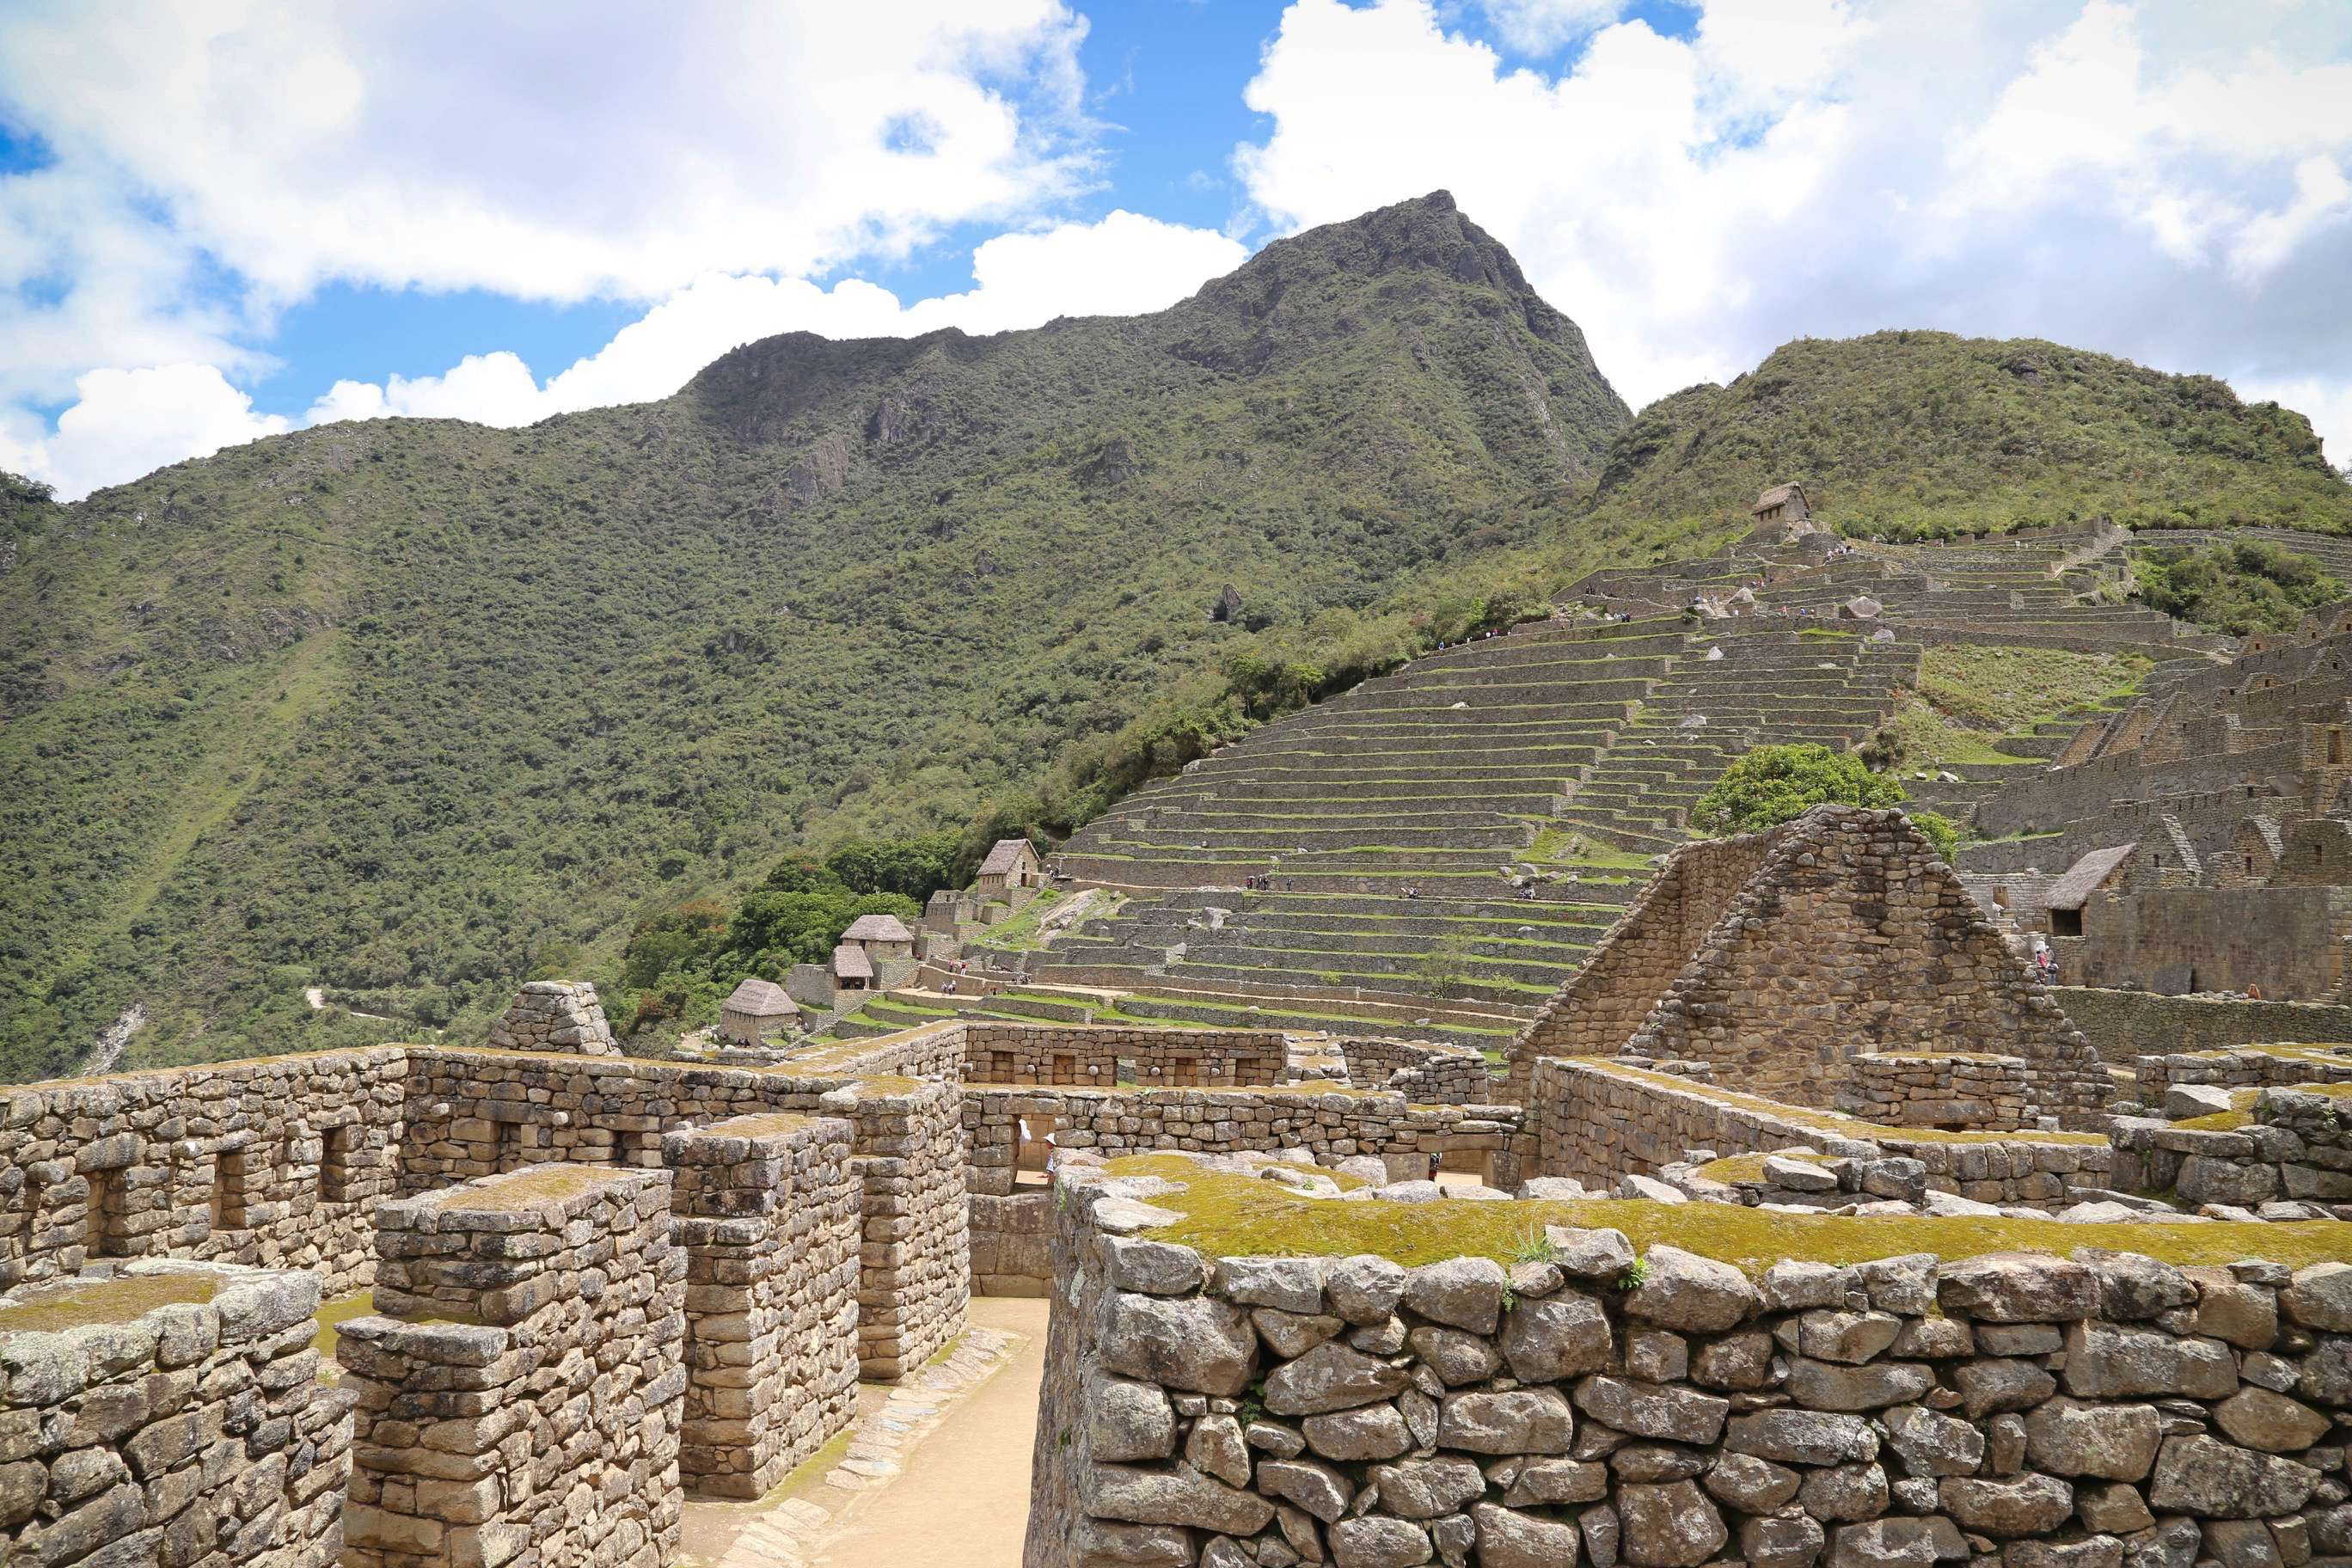 From almost any angle or perspective, Machu Picchu amazes visitors with the accomplishments of the Inca builders.